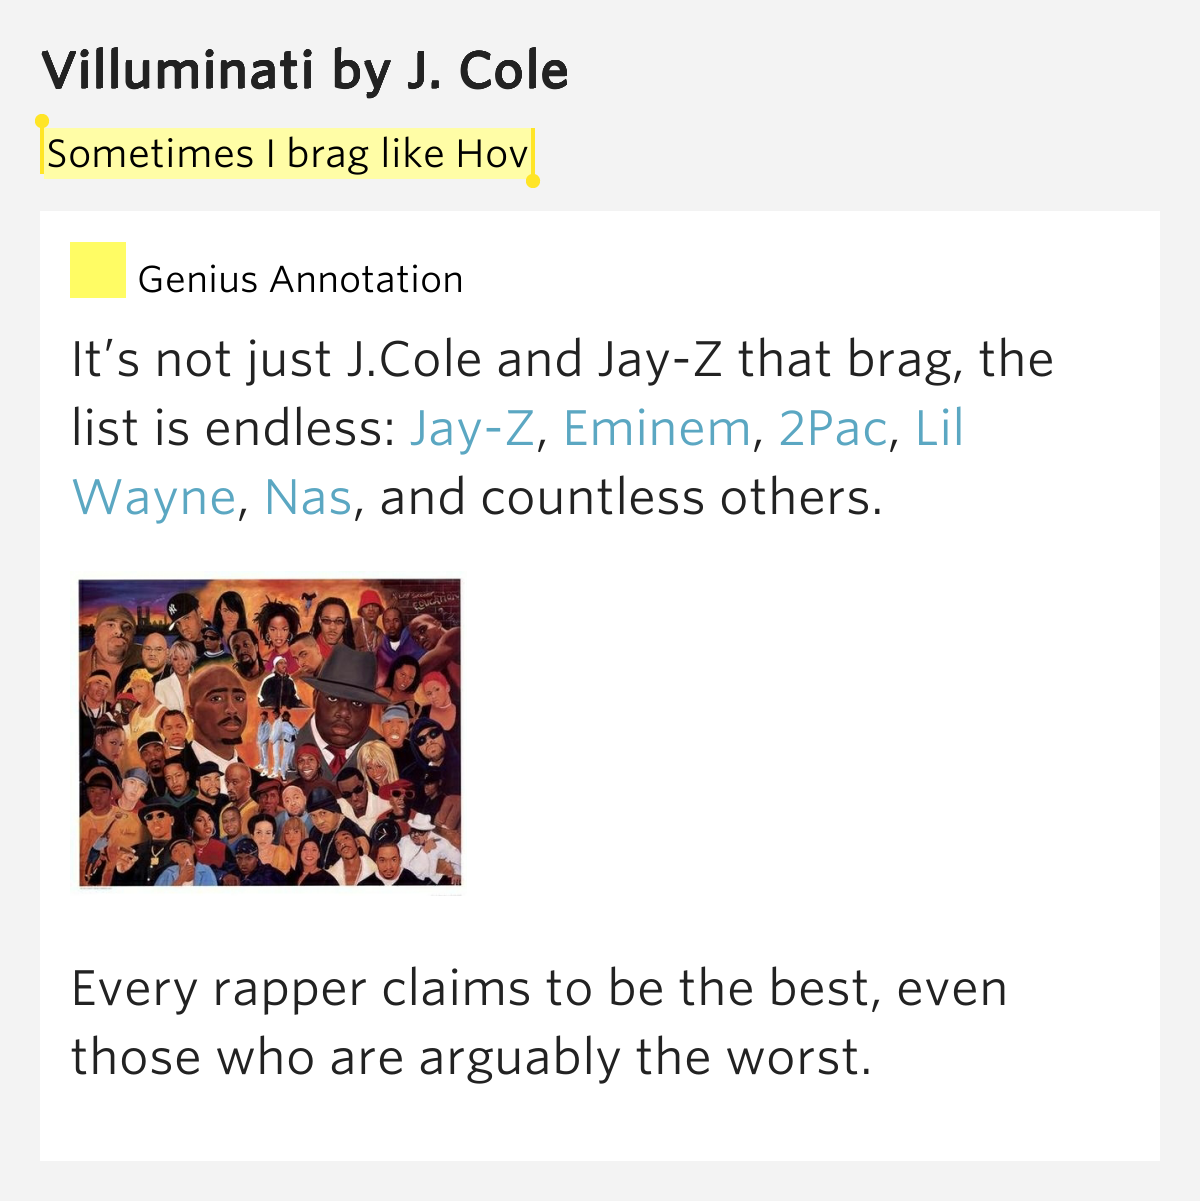 Sometimes I brag like Hov – Villuminati by J. Cole